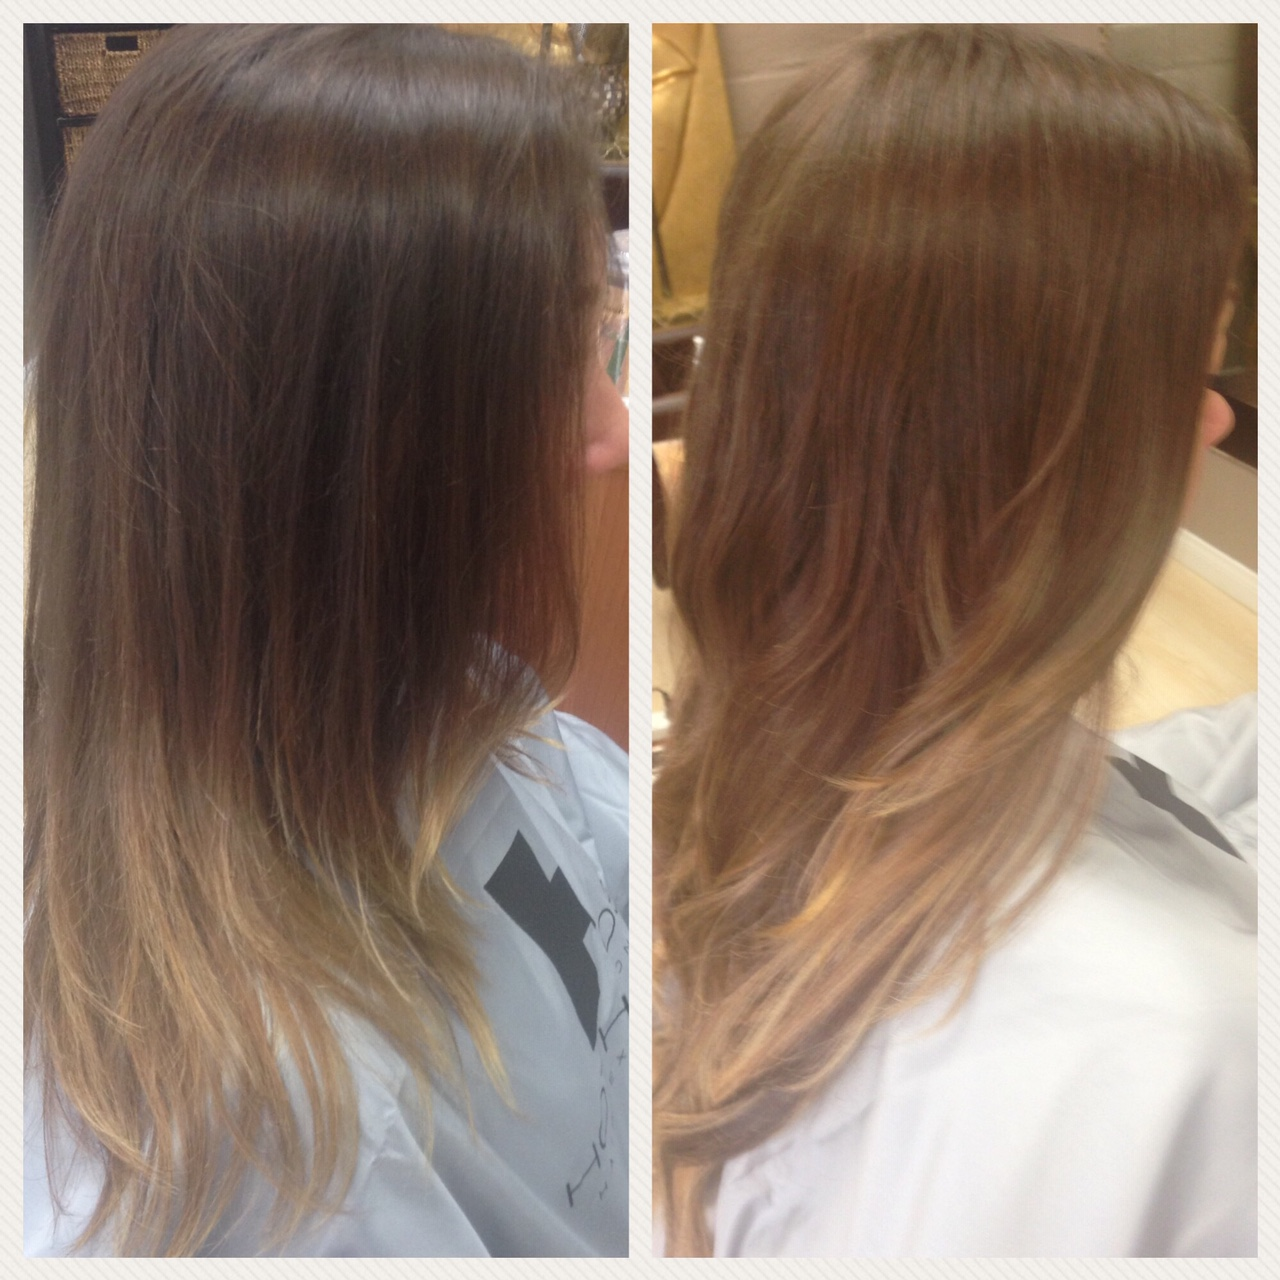 Before and After image of sandy brown hair extensions to replace tired light brown hair-hair salon solana beach -Salon LG-+1 858 344 7865.